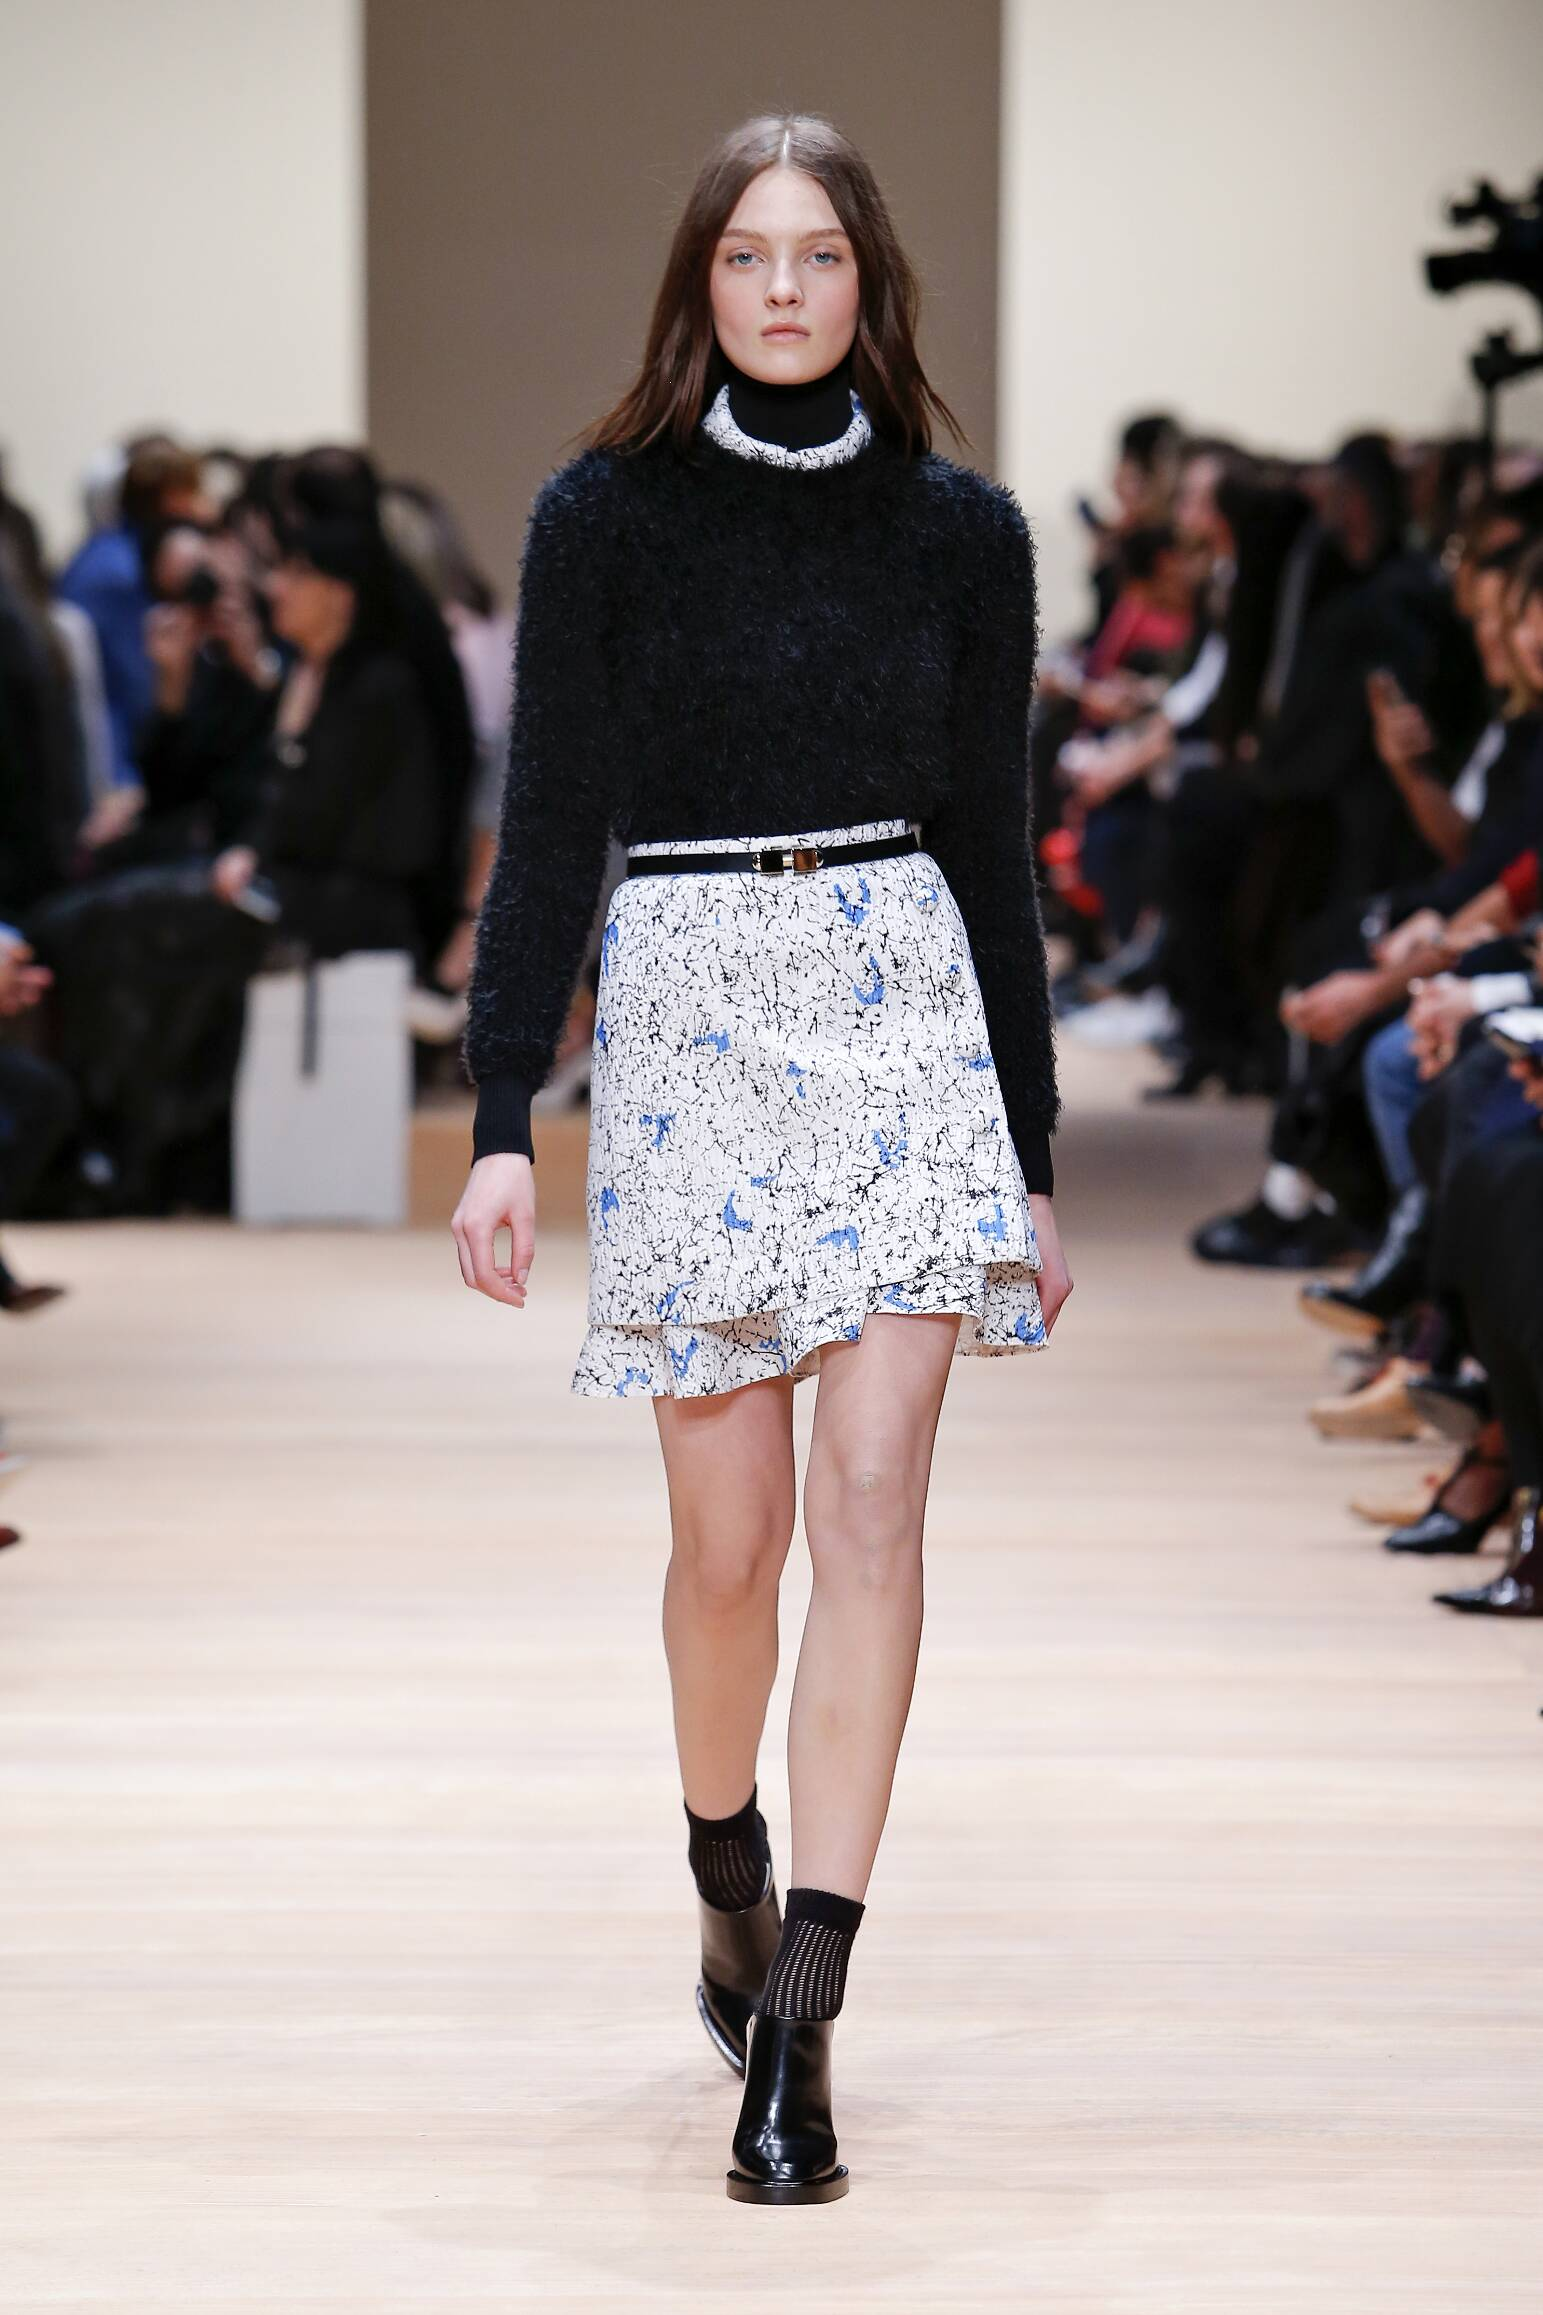 Carven Fall Winter 2015 16 Womenswear Collection Paris Fashion Week Fashion Show